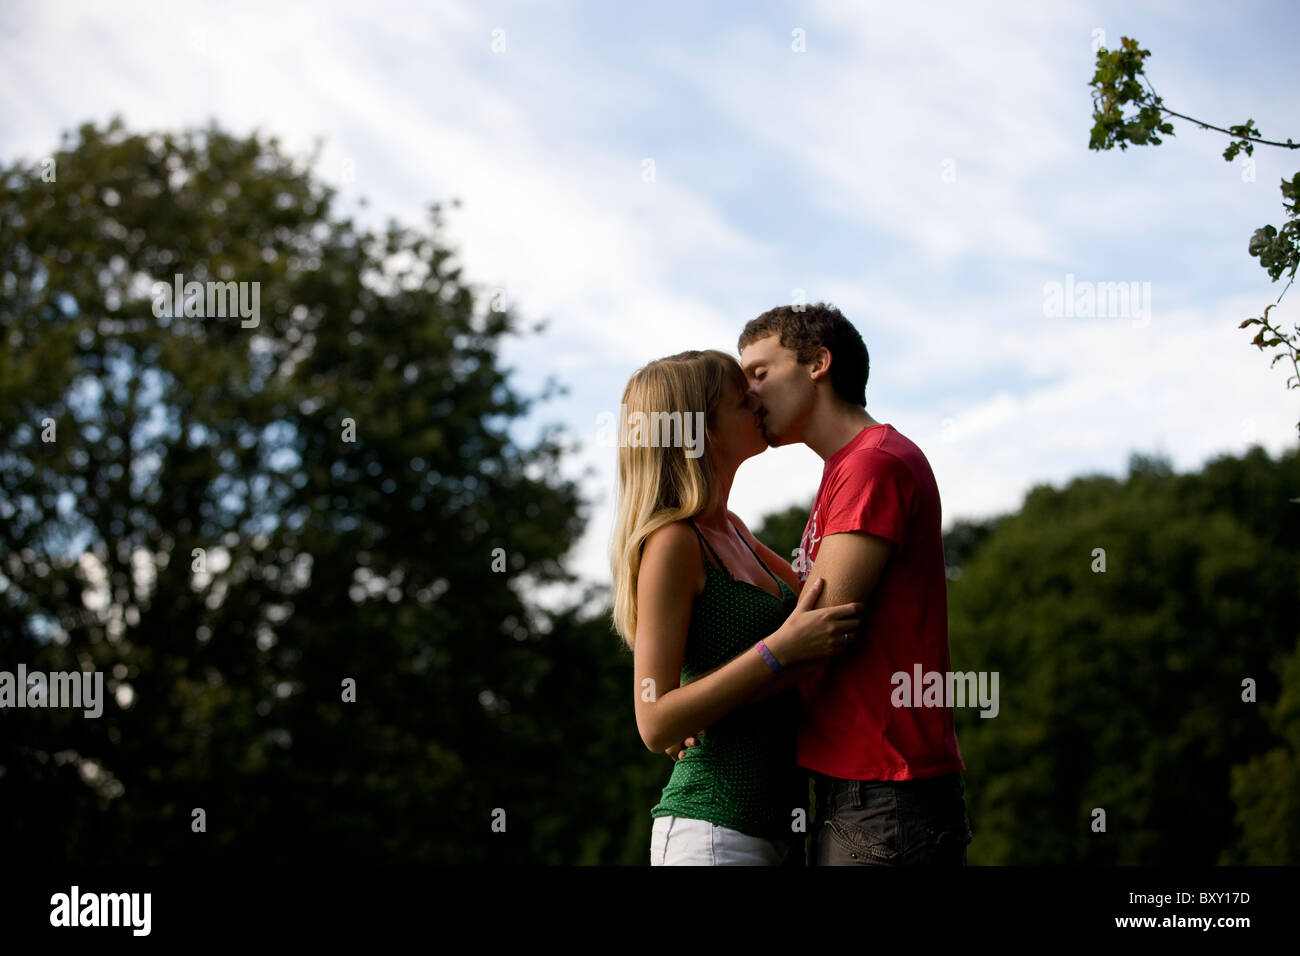 A young couple kissing outdoors - Stock Image